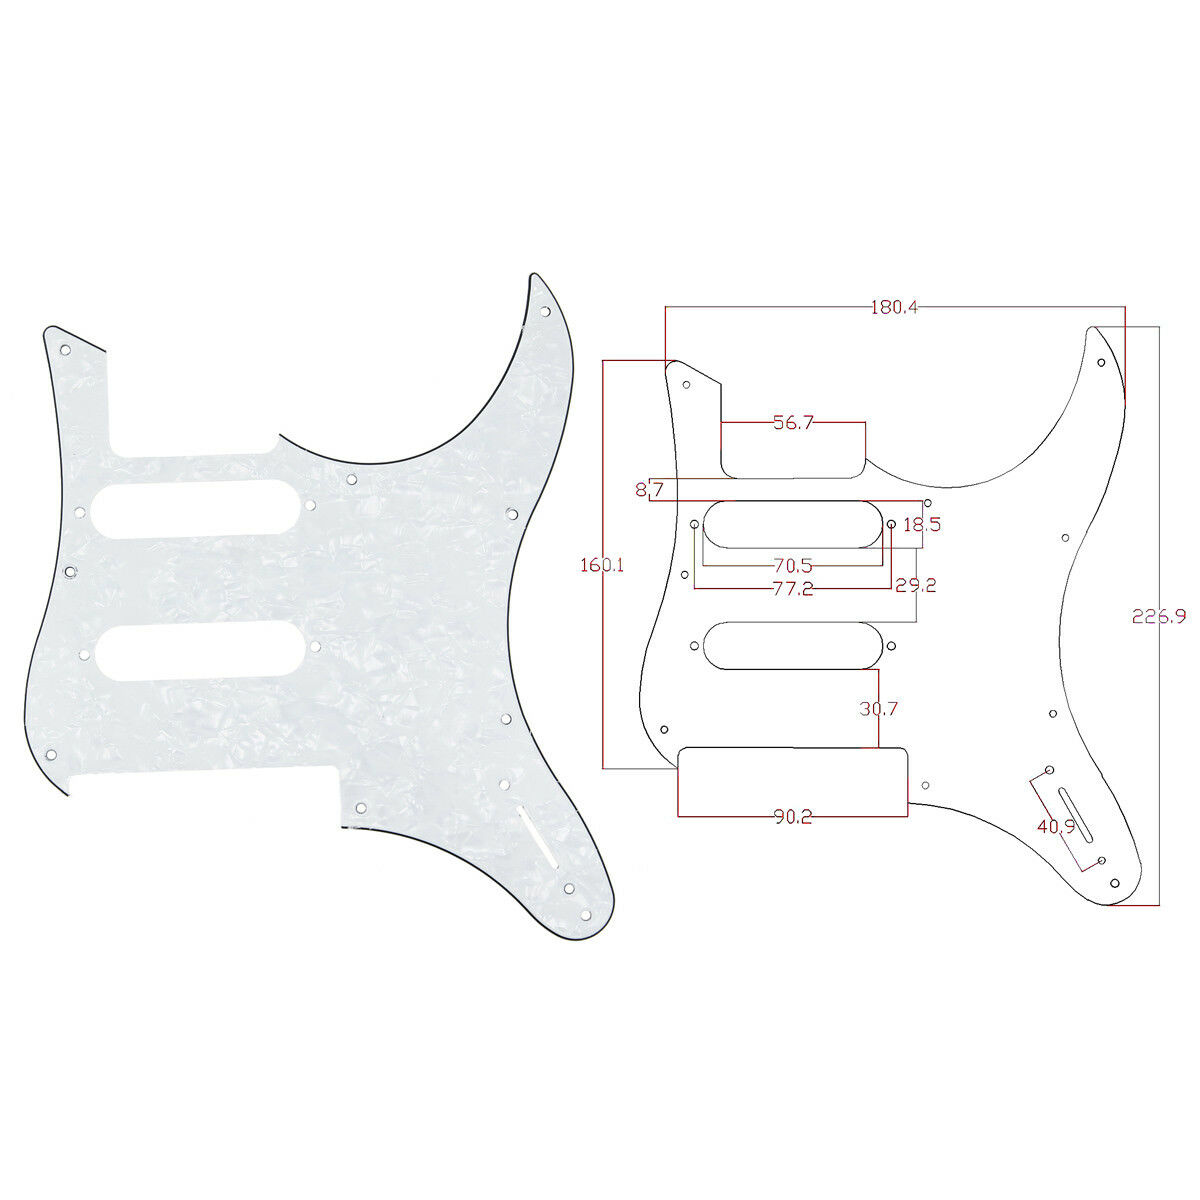 yamaha pacifica 112v wiring diagram how to use a moody white pearl guitar pickguard for